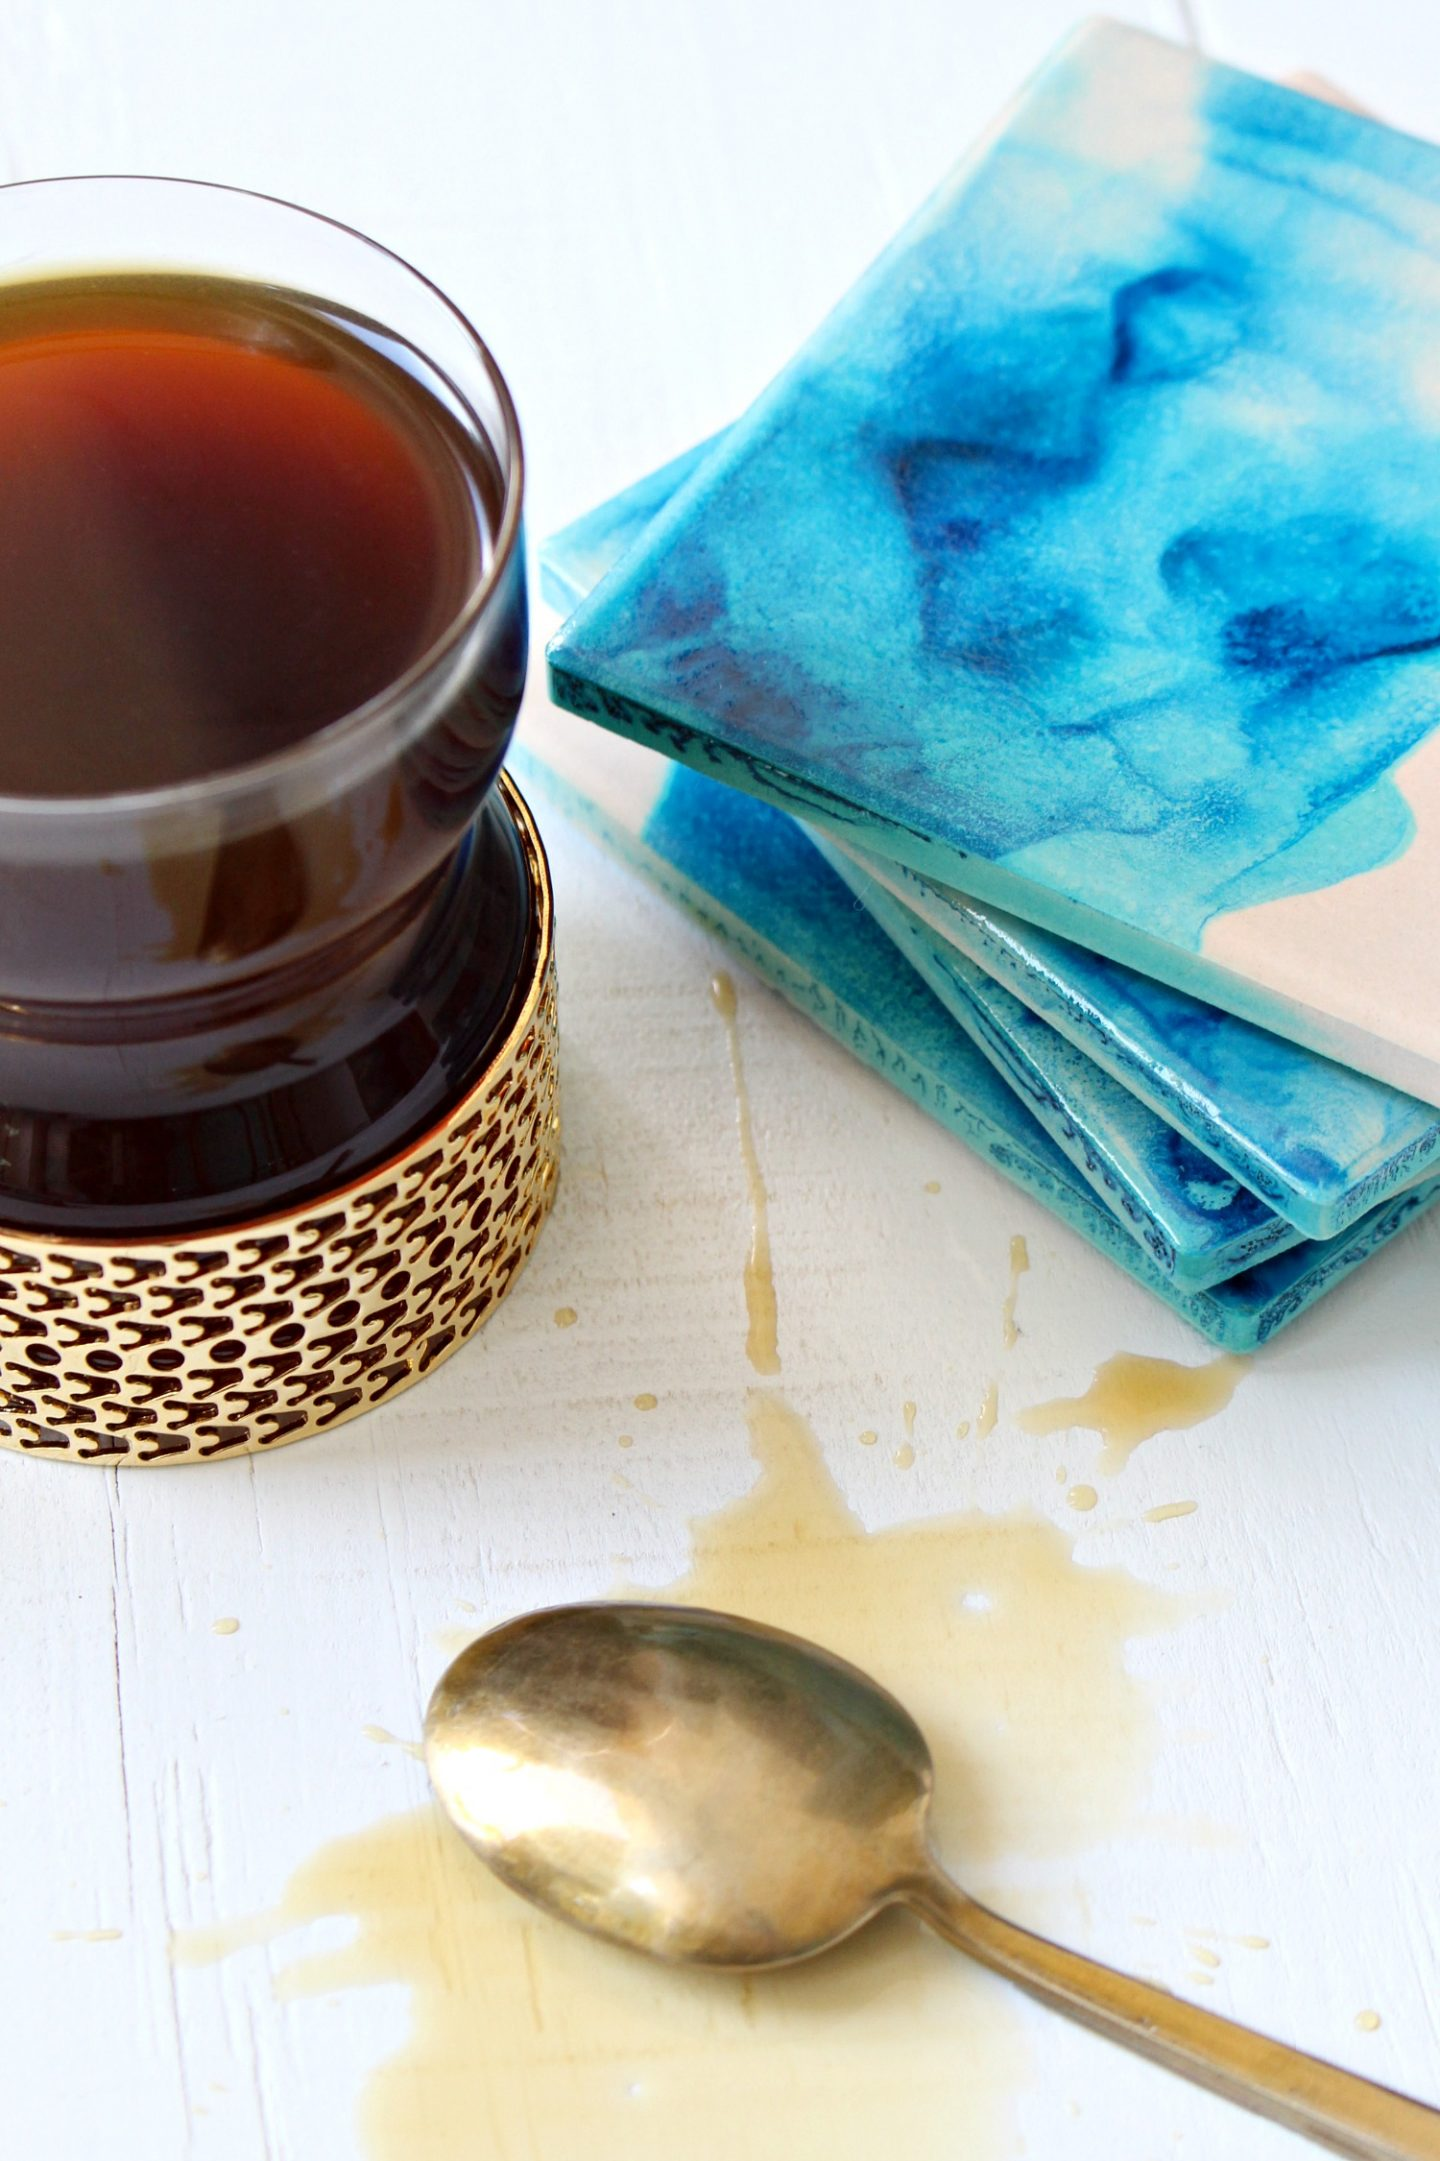 DIY Alcohol Ink Project Idea: Watercolor Coasters!